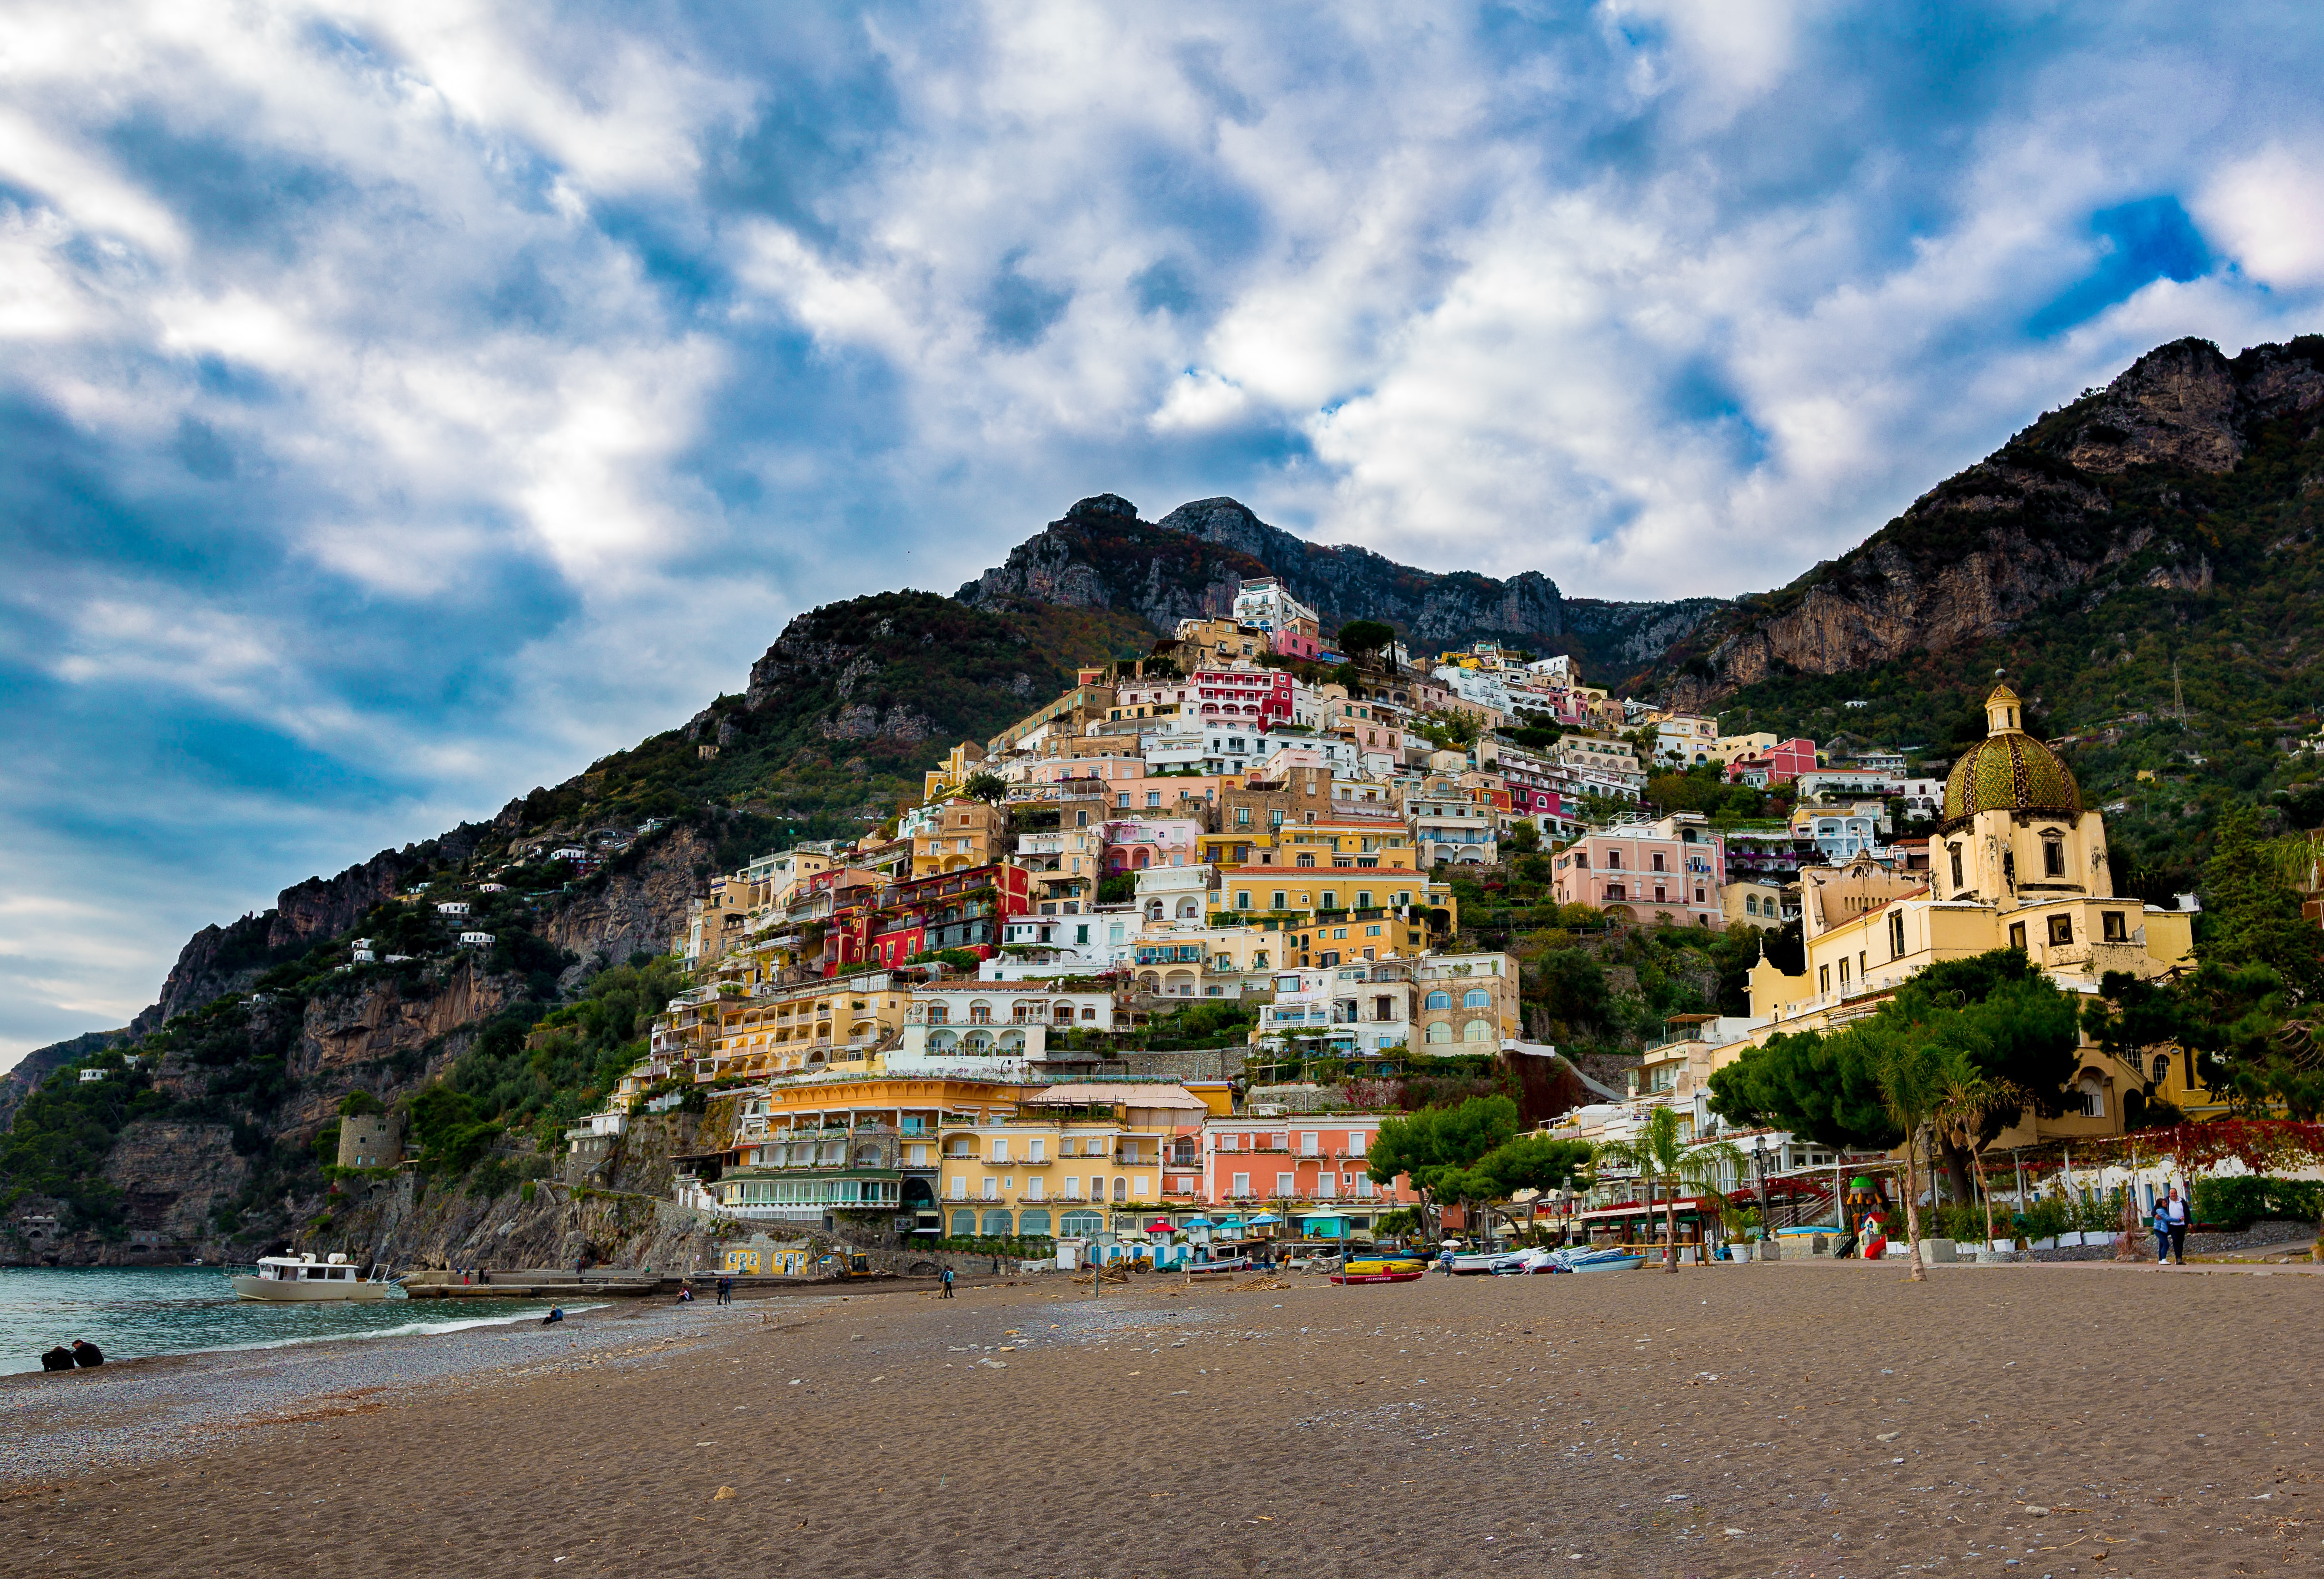 multicolored village on mountain under white and blue skies